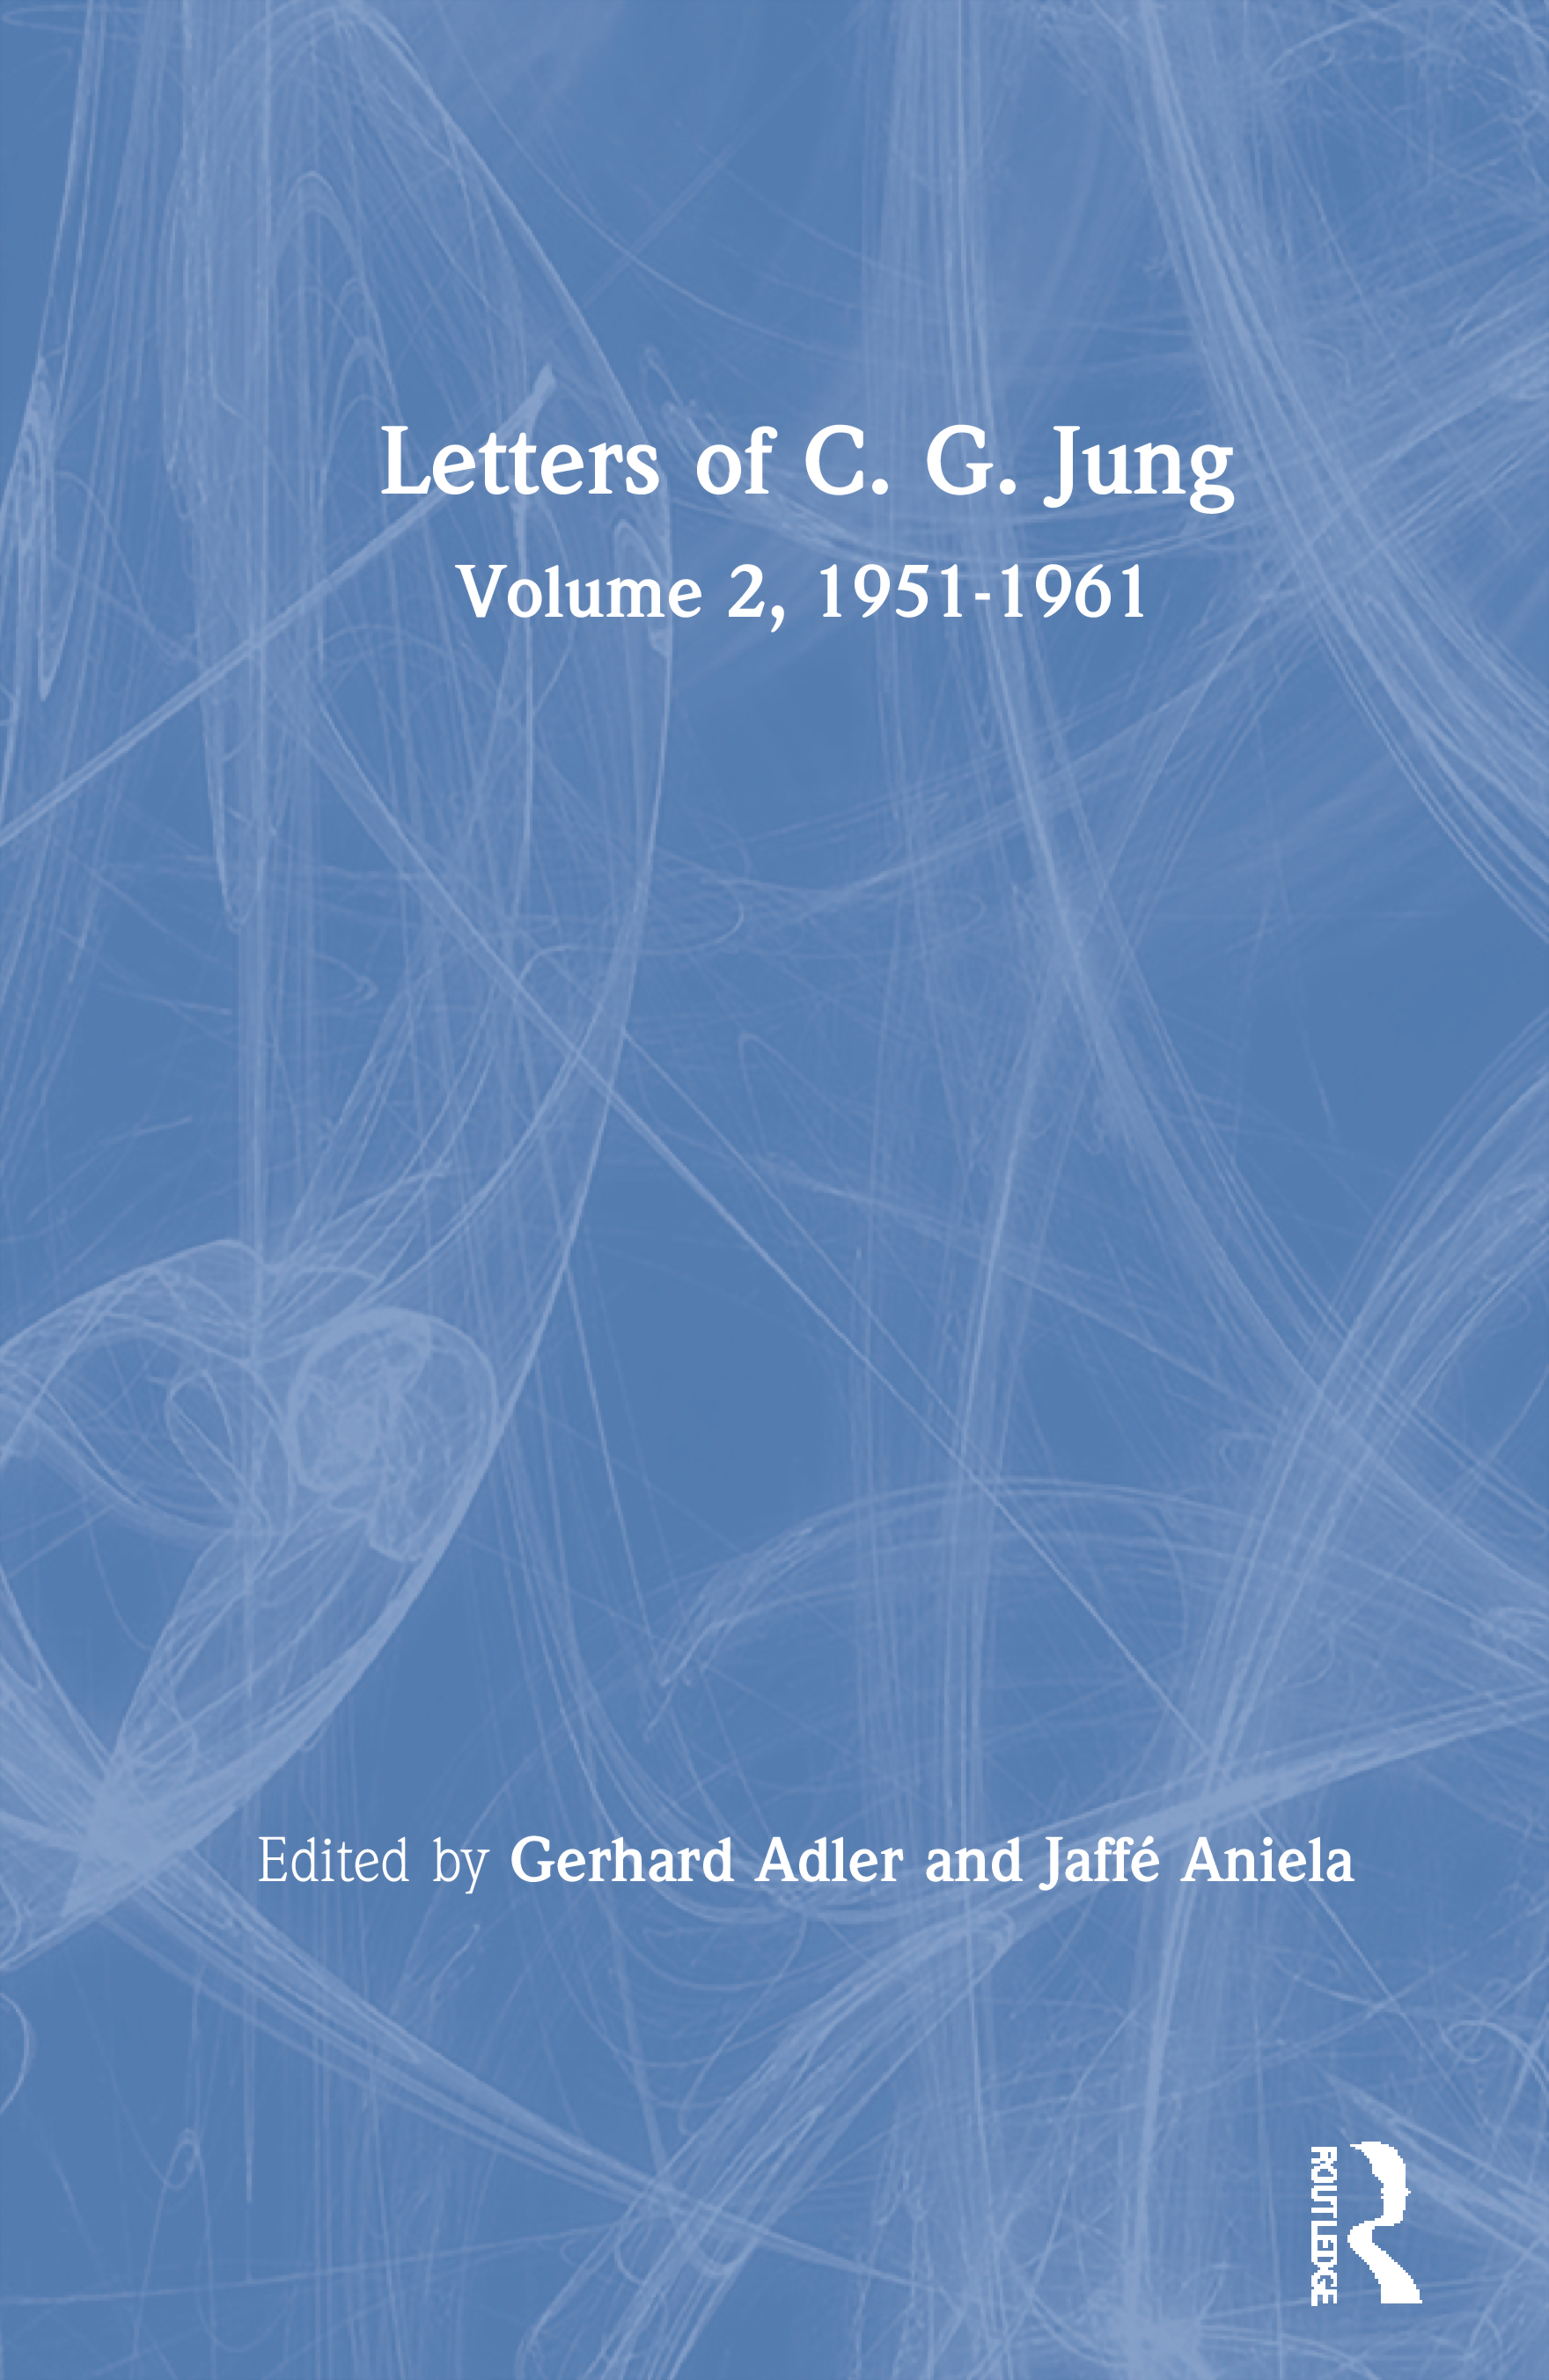 Letters of C. G. Jung: Volume 2, 1951-1961 (Hardback) book cover